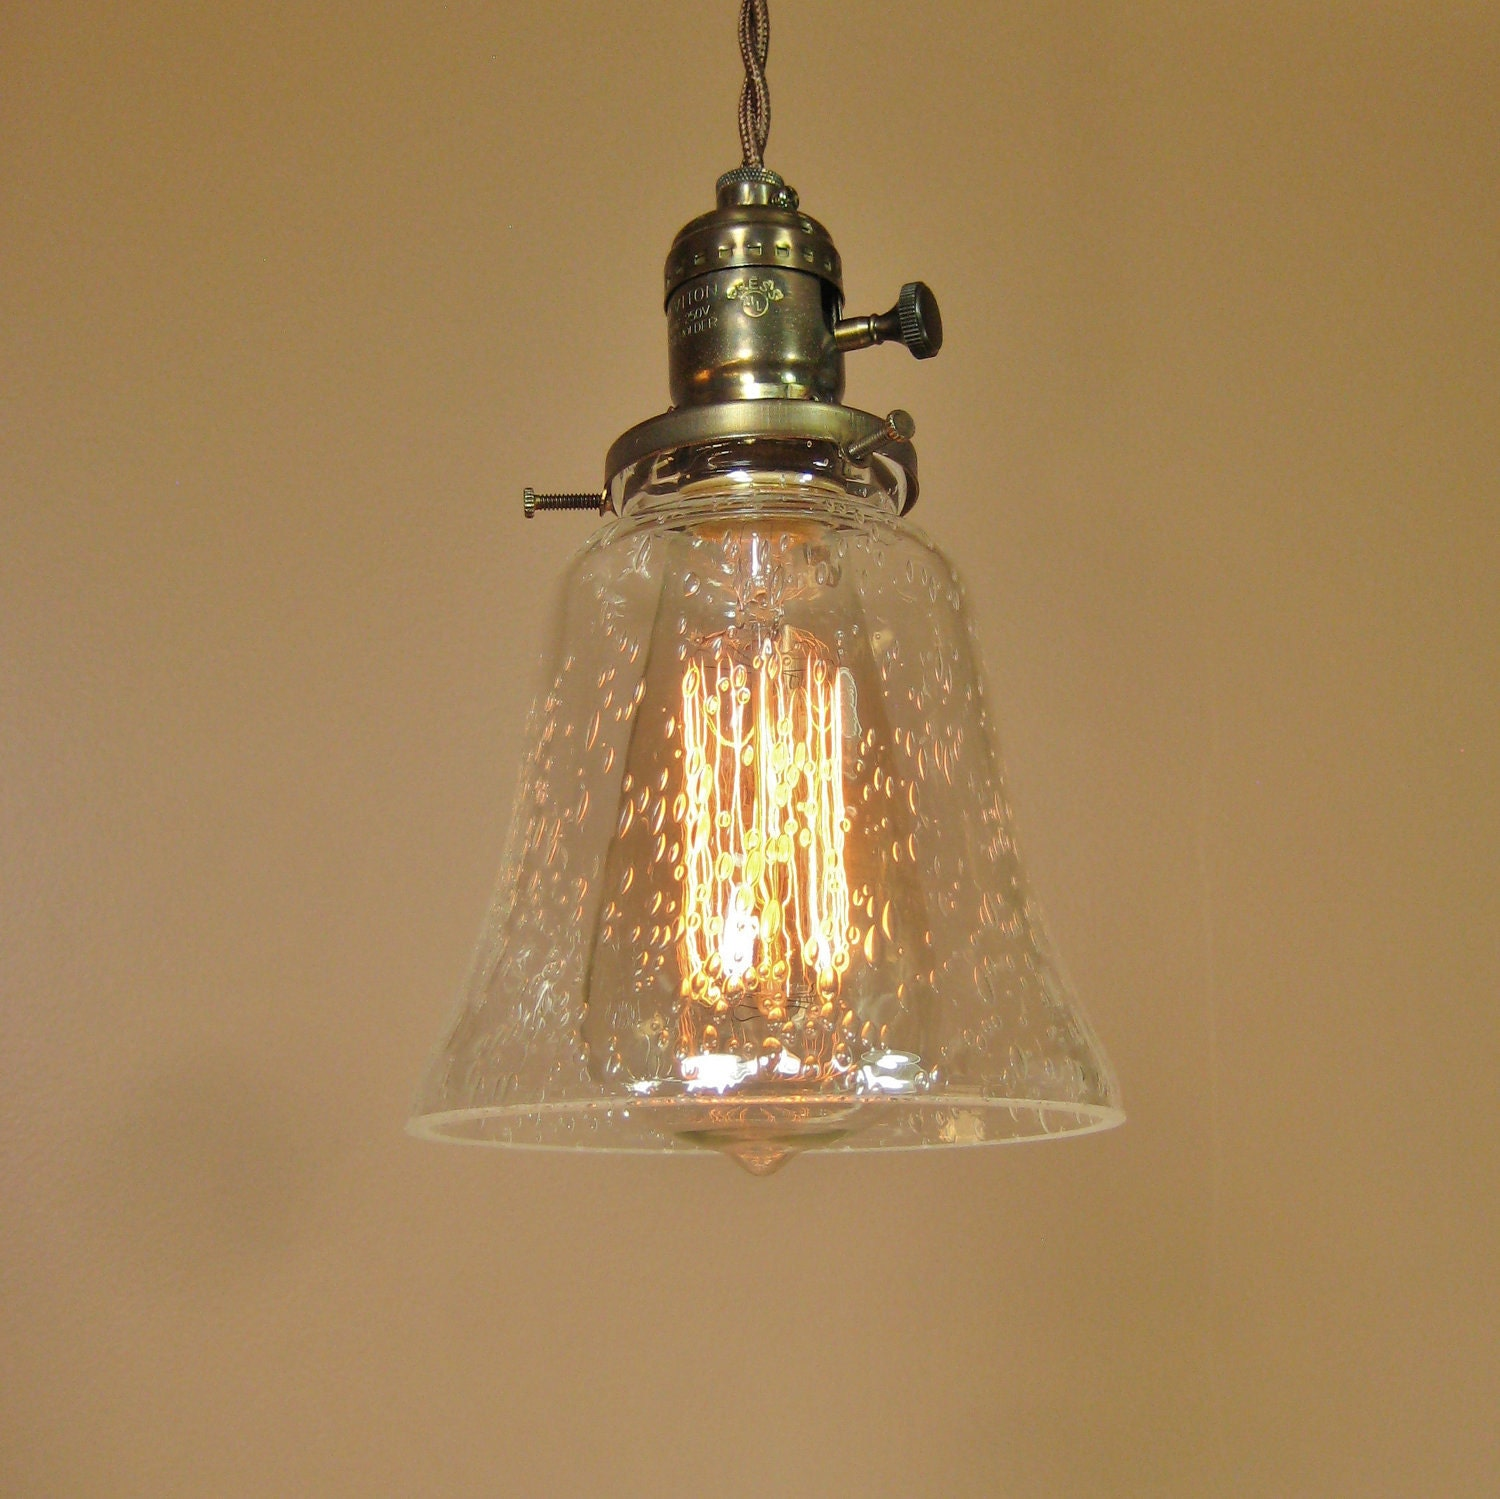 Mini pendant light antique vintage reproduction ceiling light for Antique pendant light fixtures